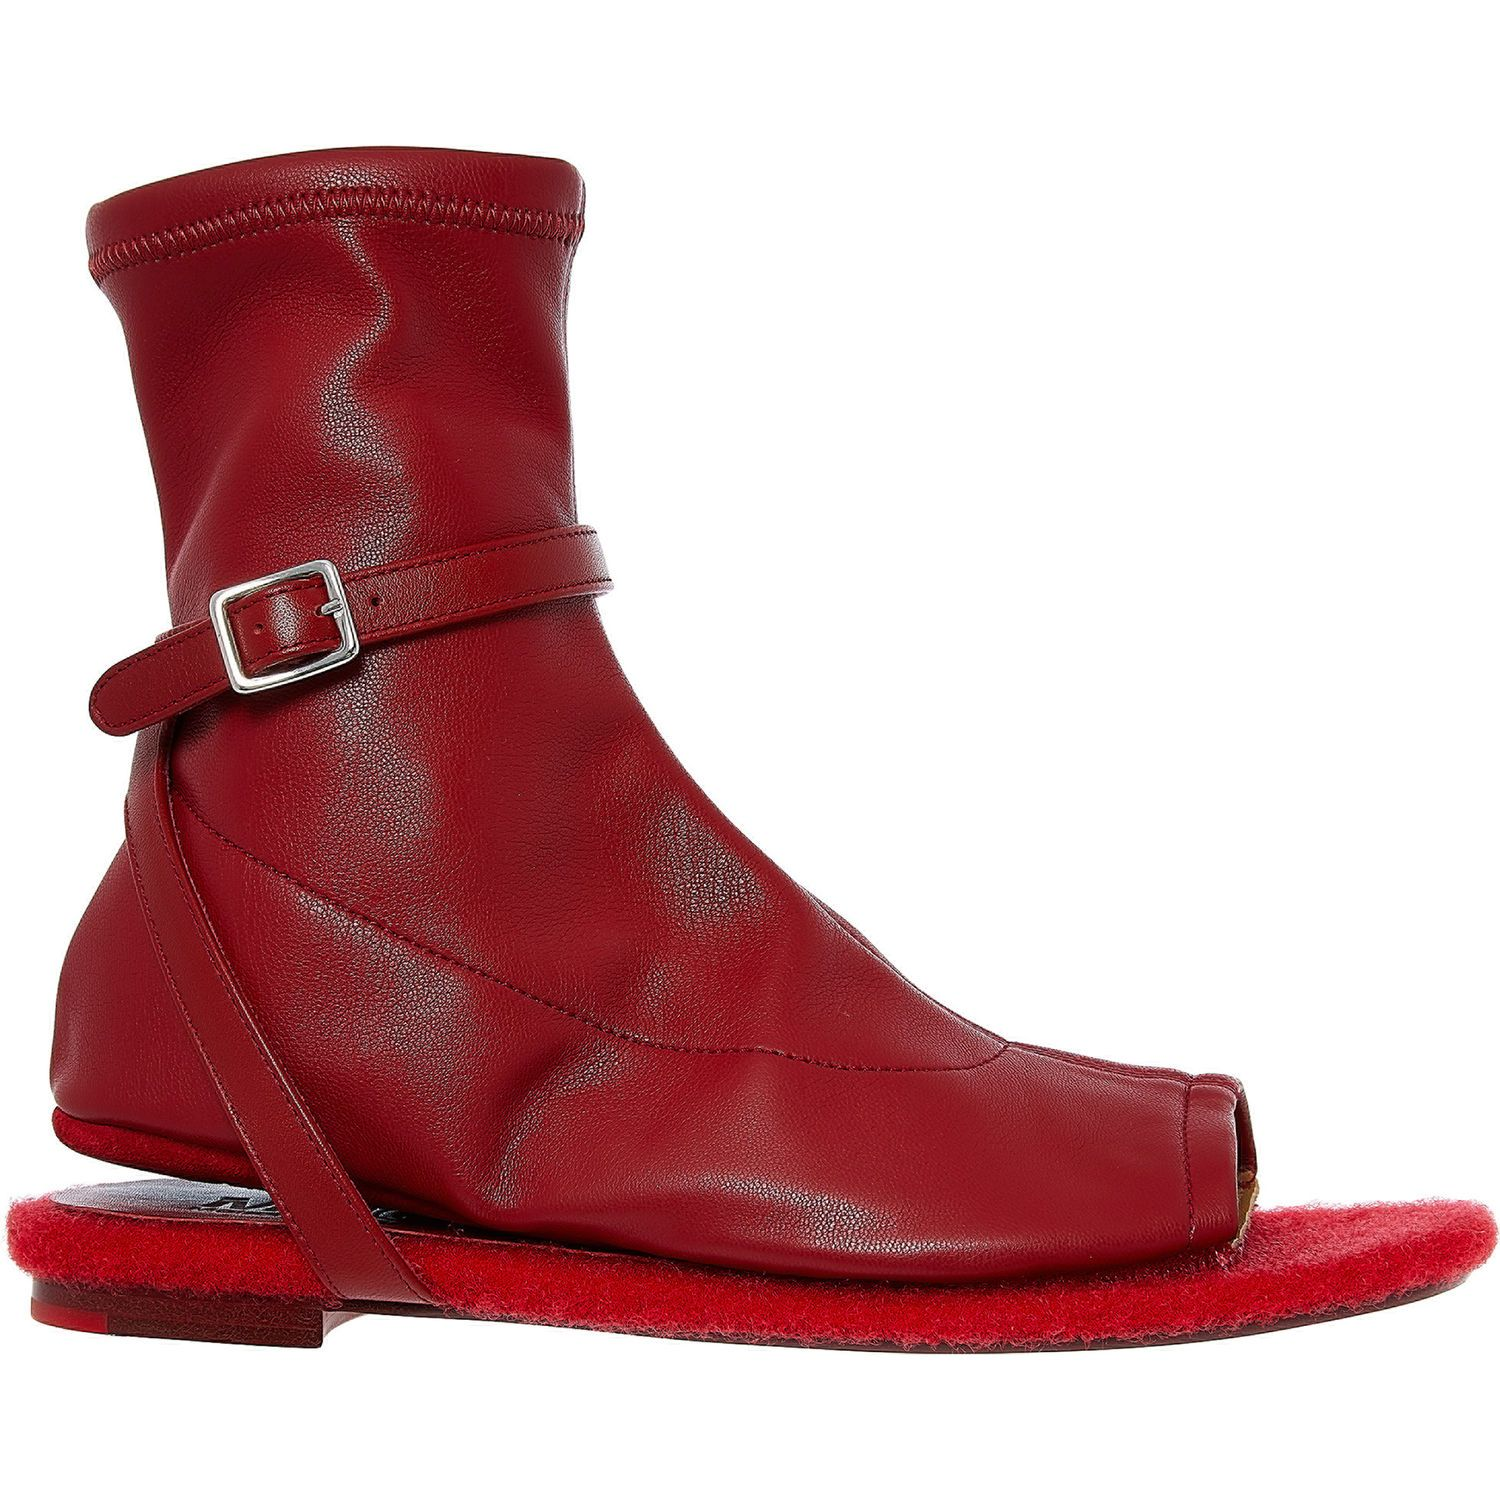 outlet store detailed images shoes for cheap Red Peep Toe Sandals - Boots - Shoes - Women - TK Maxx | Boots ...